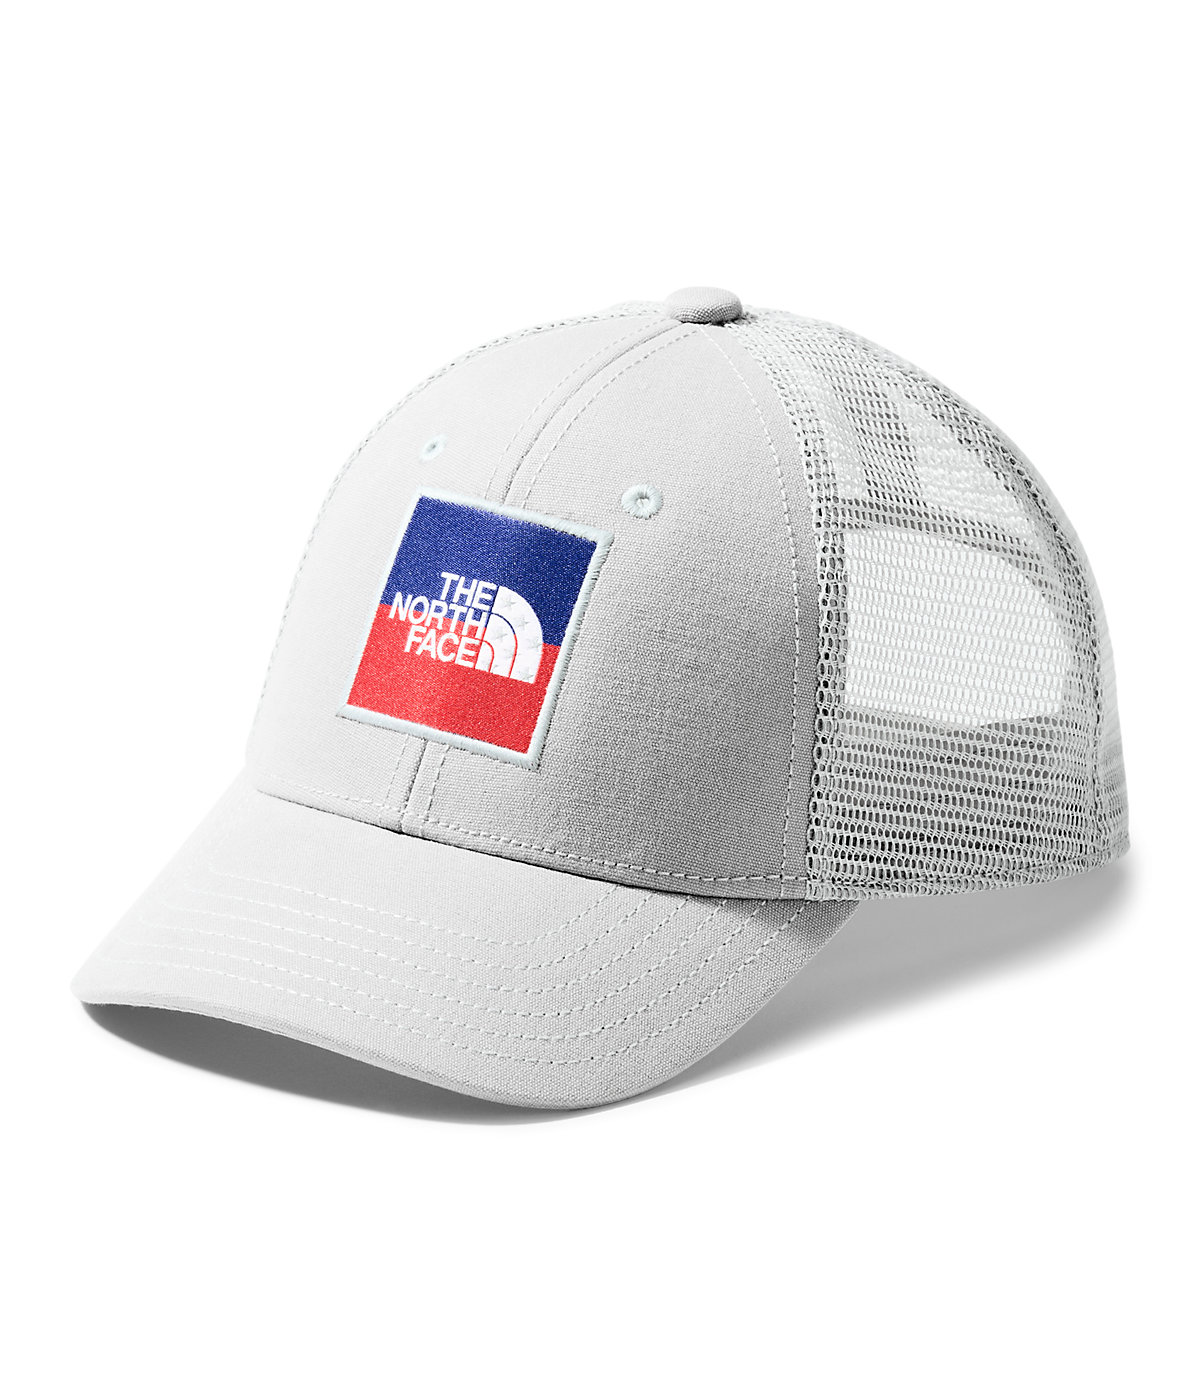 81bbd85b7 The North Face Kids' Americana Trucker Hat in 2019 | Products ...